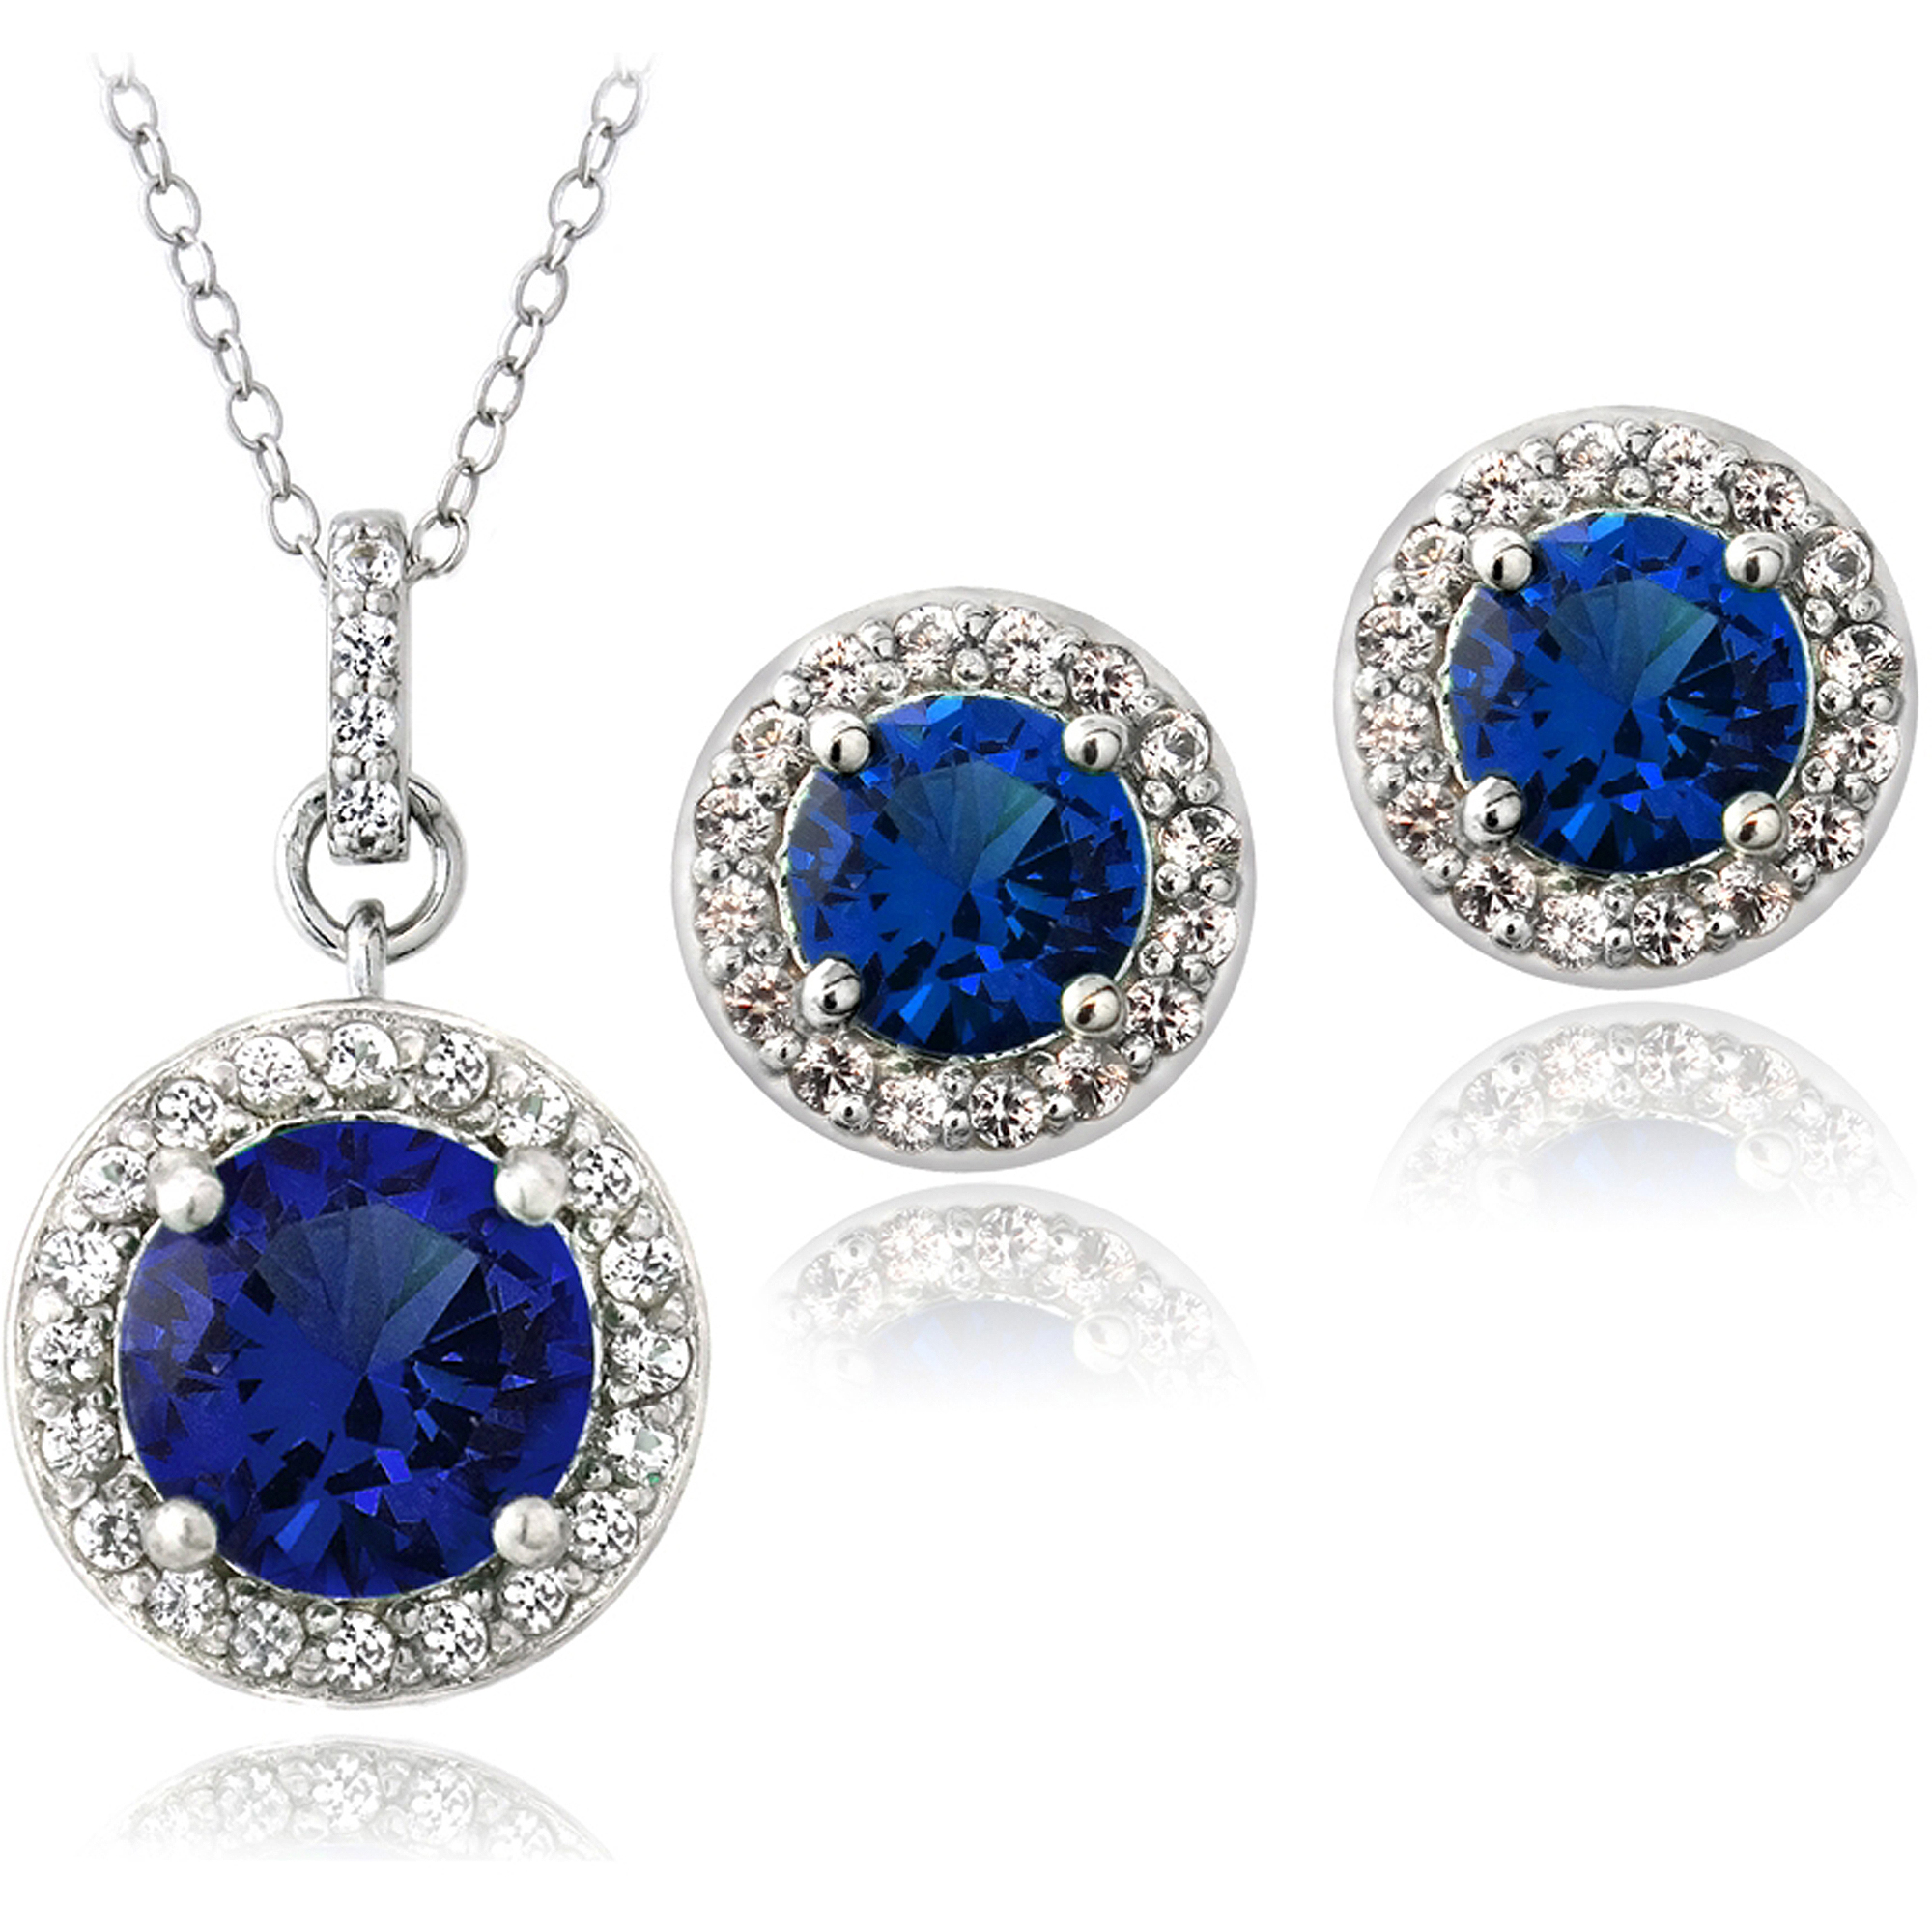 5.25 Carat T.G.W. Created Blue and White Sapphire Sterling Silver Round Stud Earrings and Necklace Set